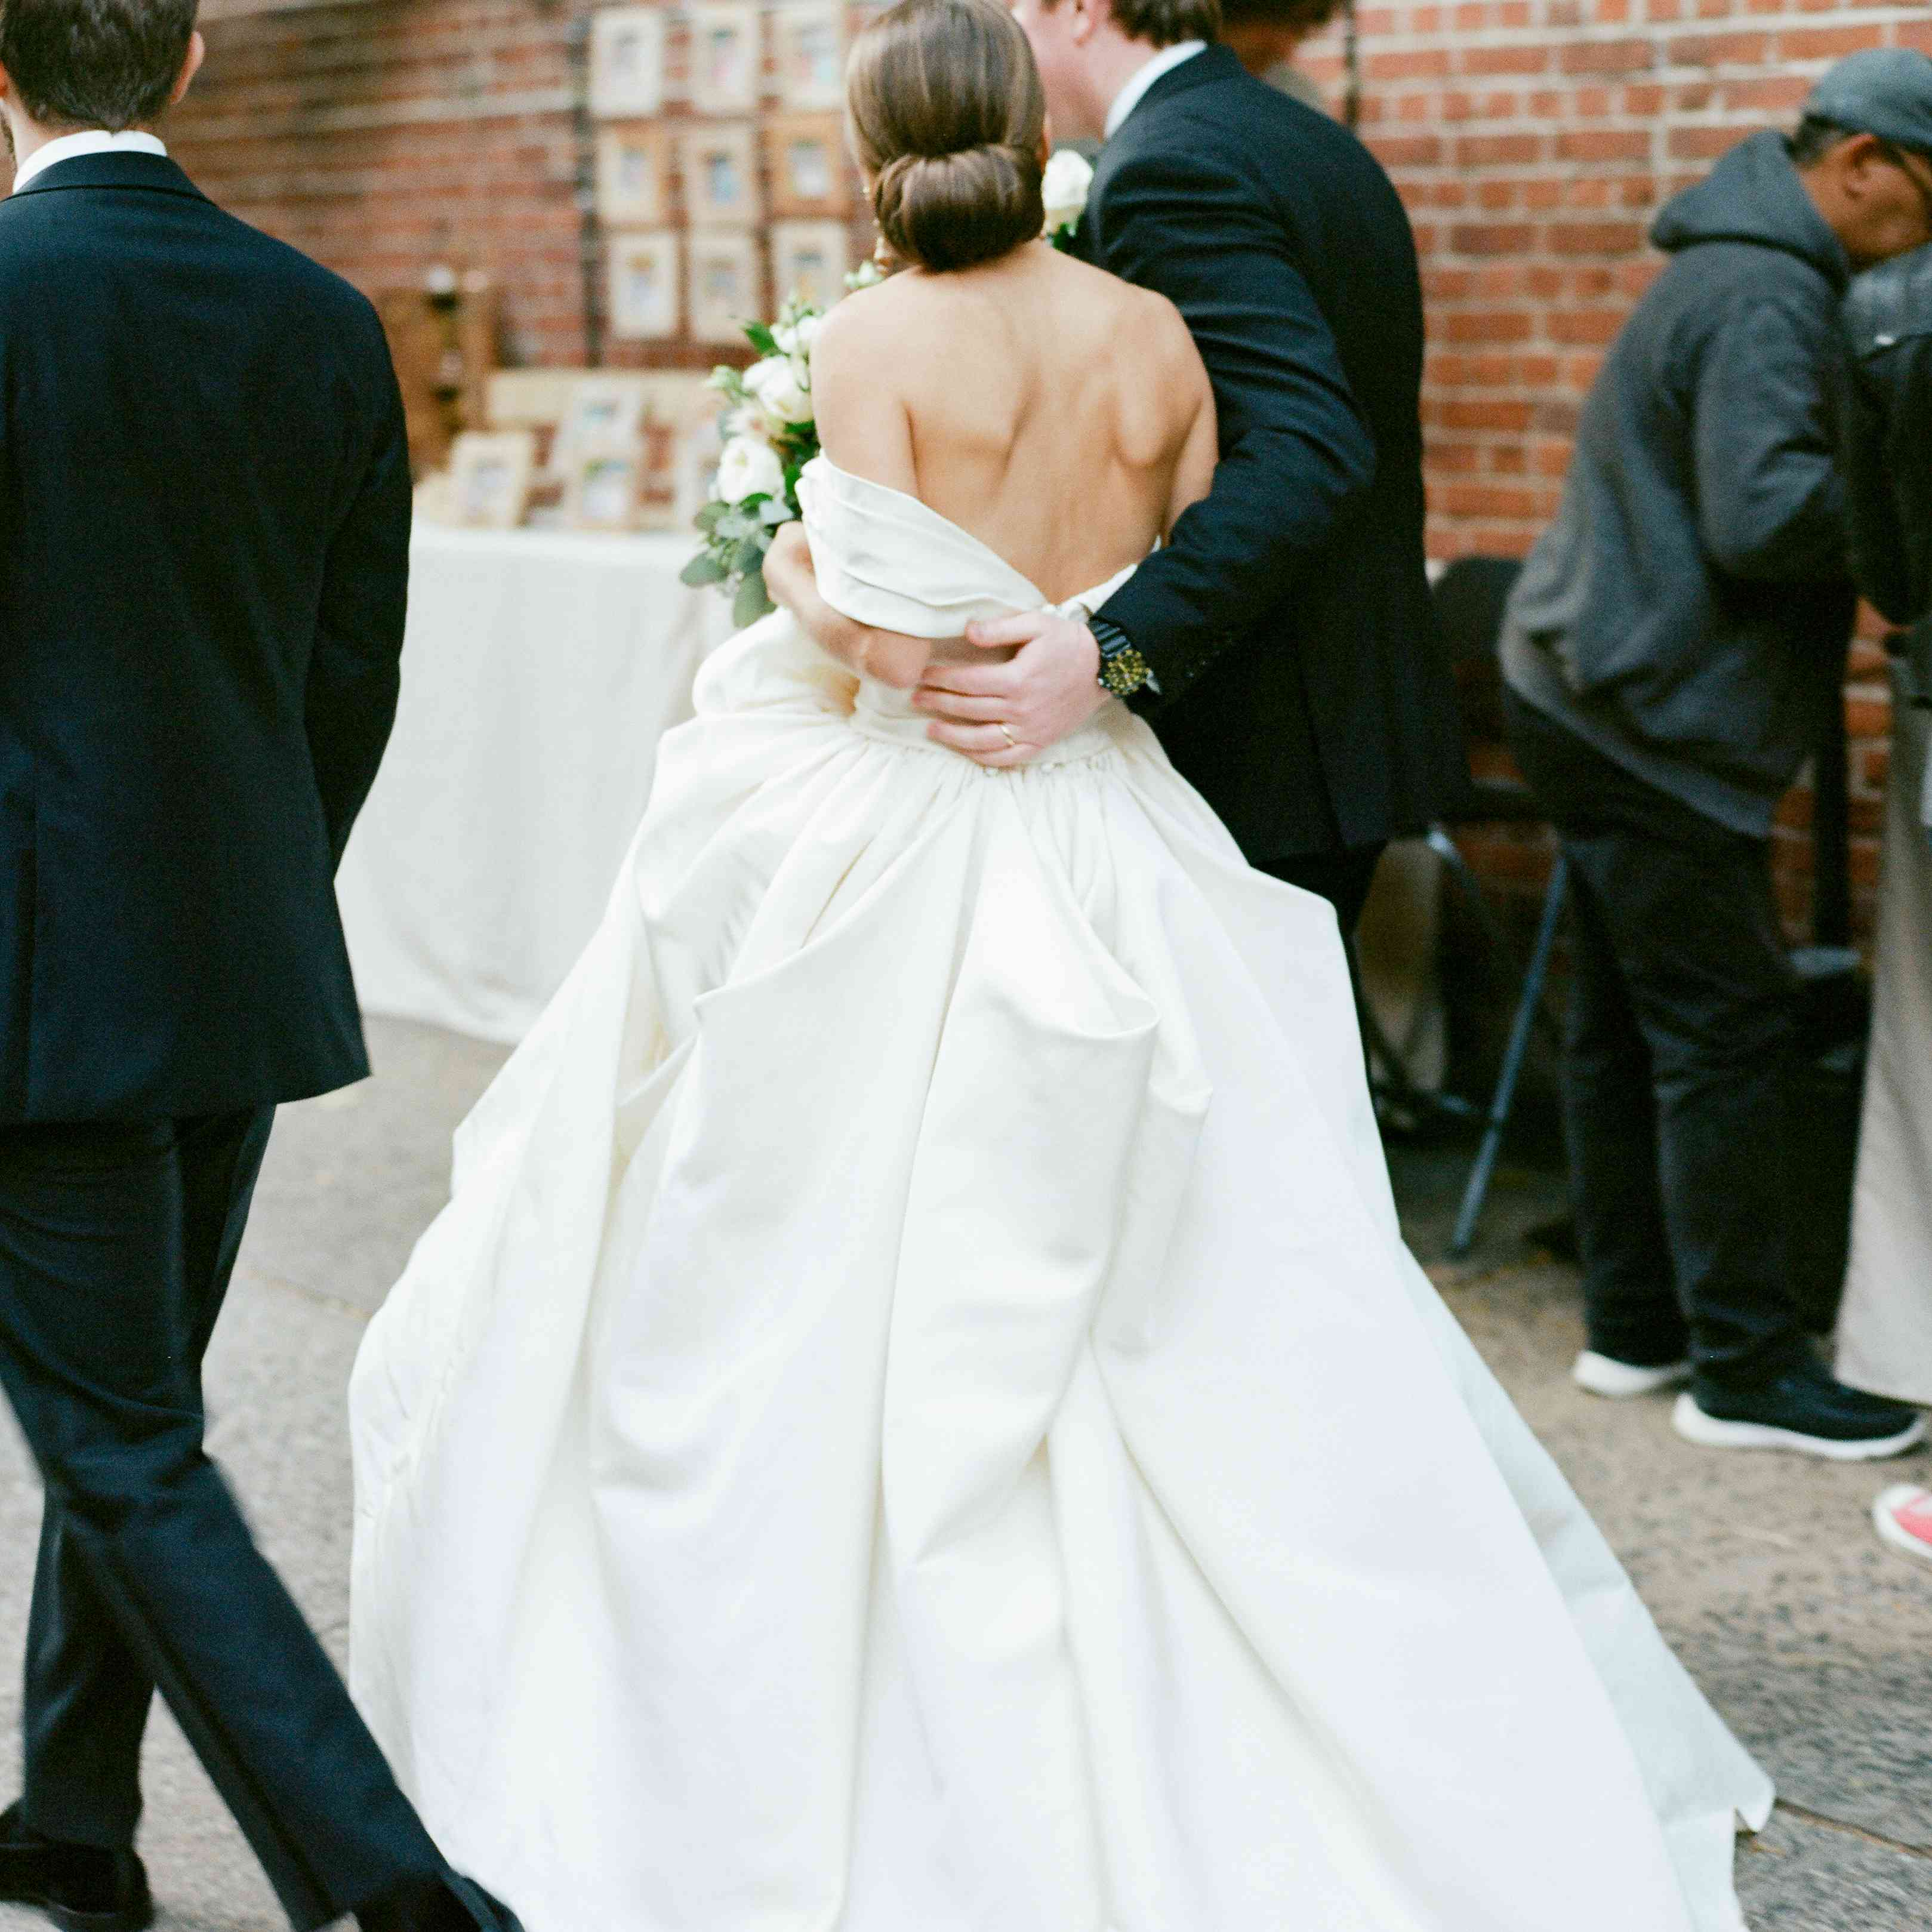 <p>bride and groom in city streets</p><br><br>